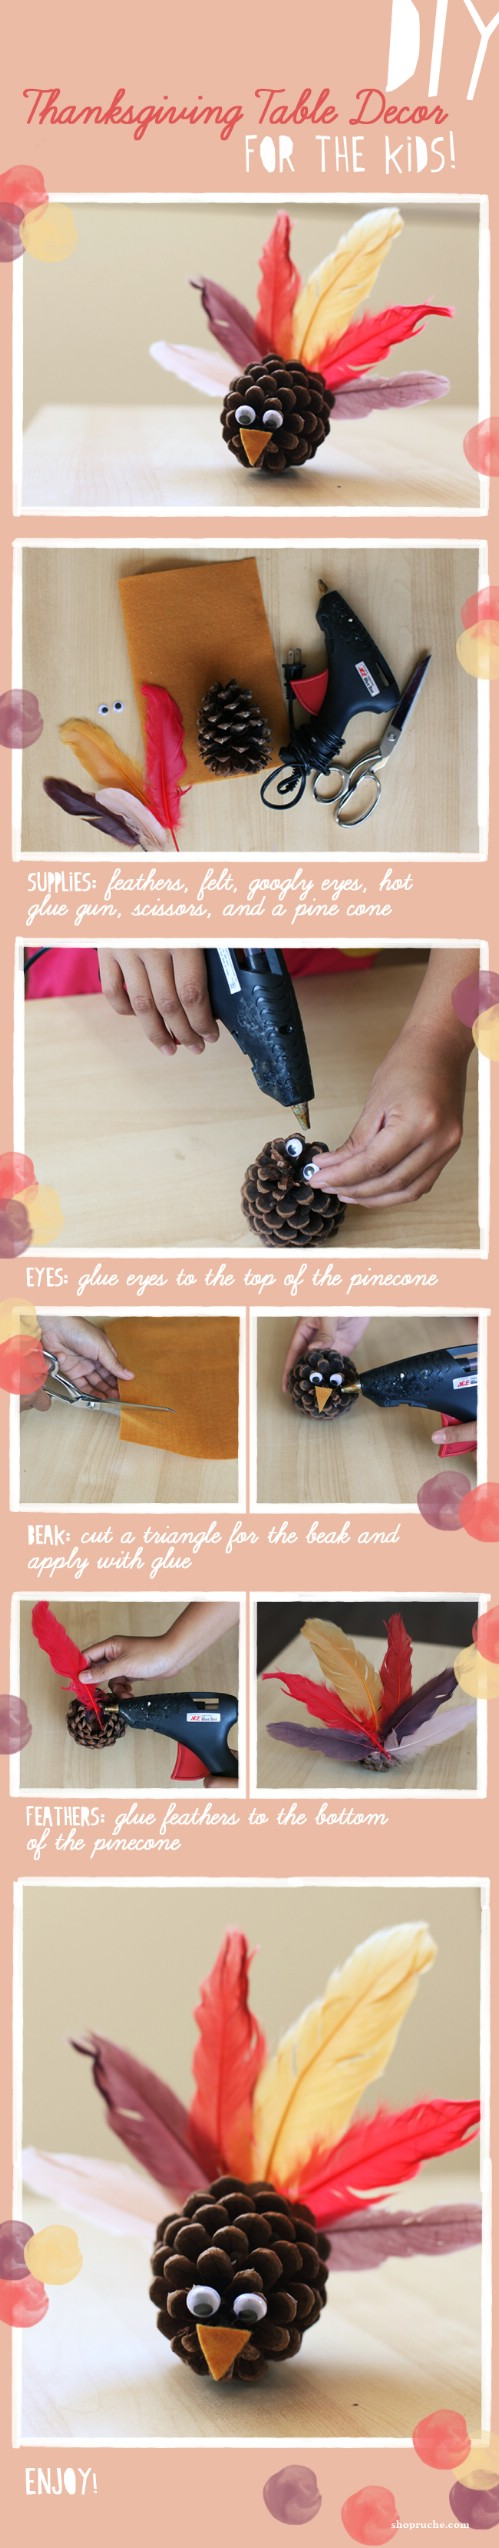 Wonderful diy thanksgiving decorations for your home